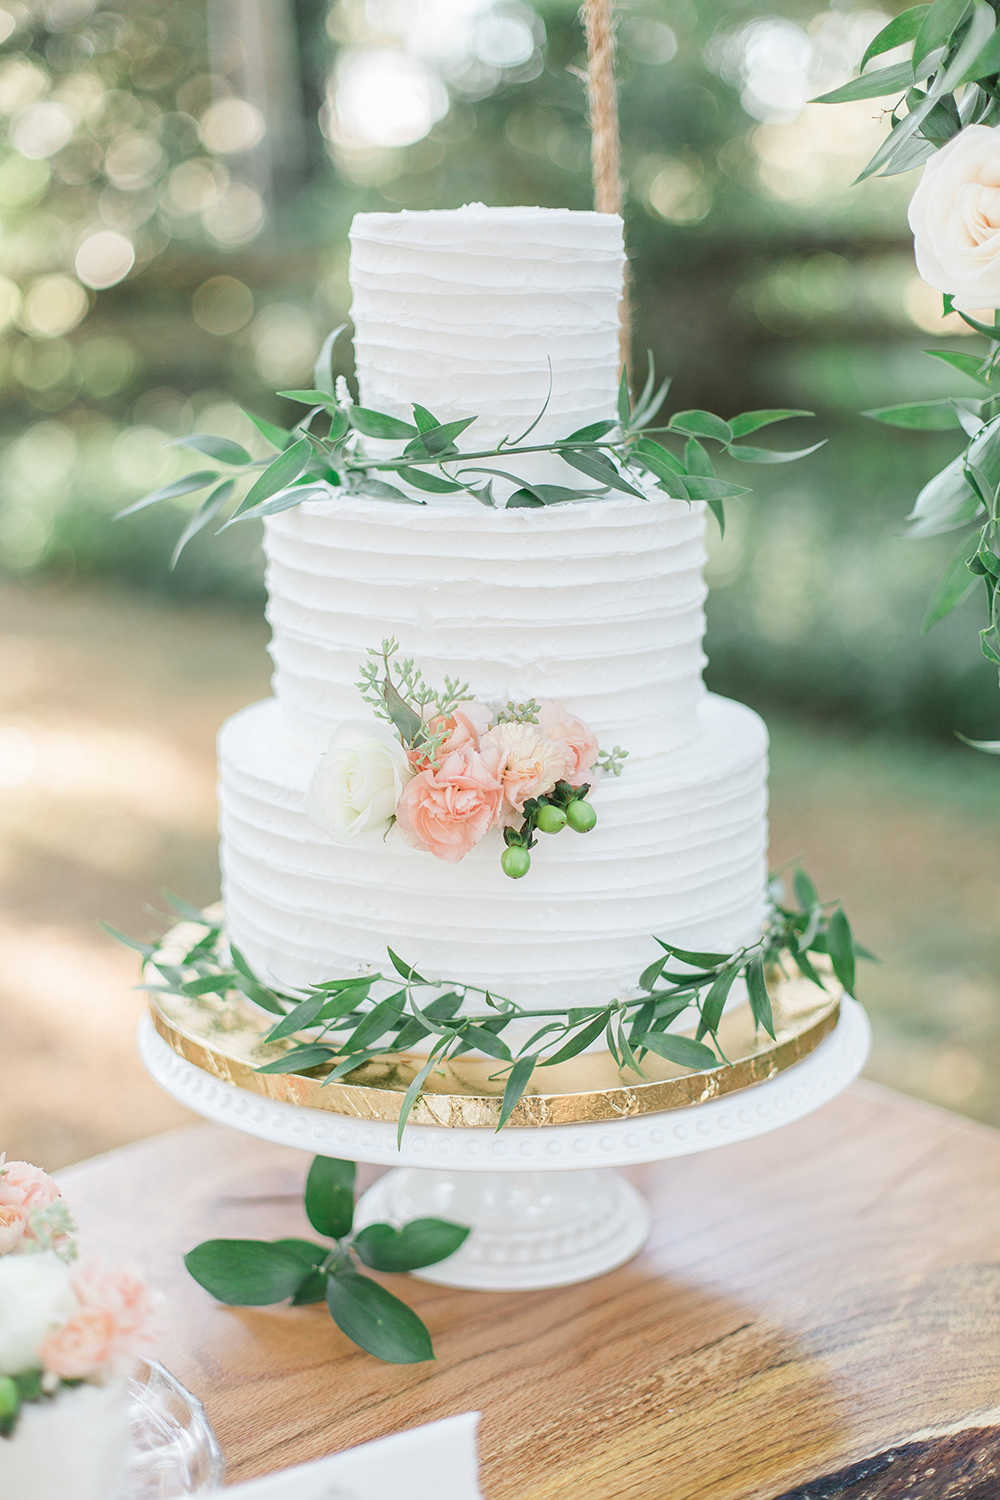 romantic wedding cake - photo by Landon Hendrick Photography http://ruffledblog.com/southern-garden-chic-wedding-inspiration